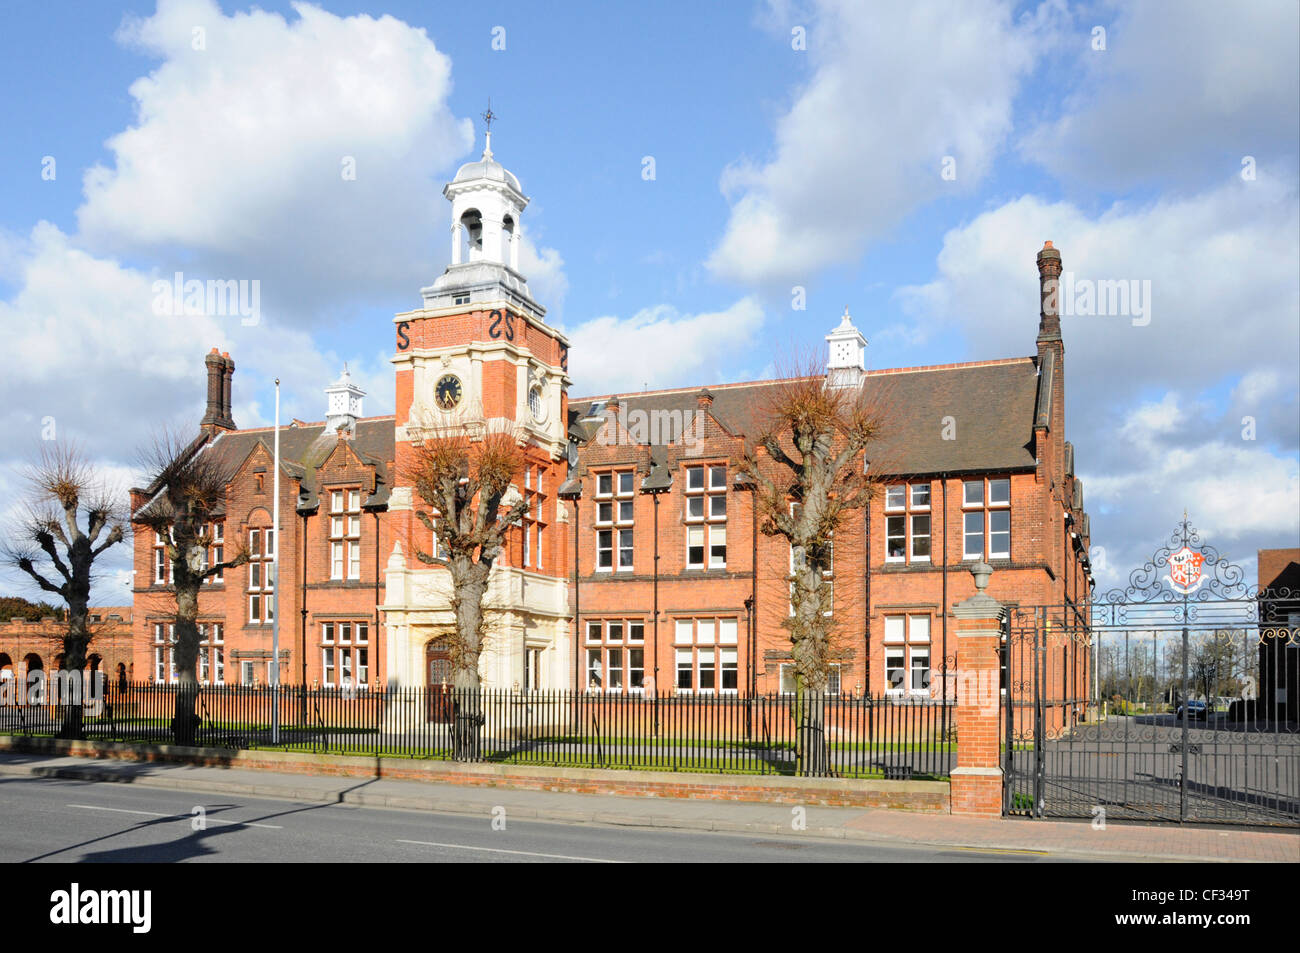 Gates & front of Brentwood School main brick building private independent day & boarding school education - Stock Image